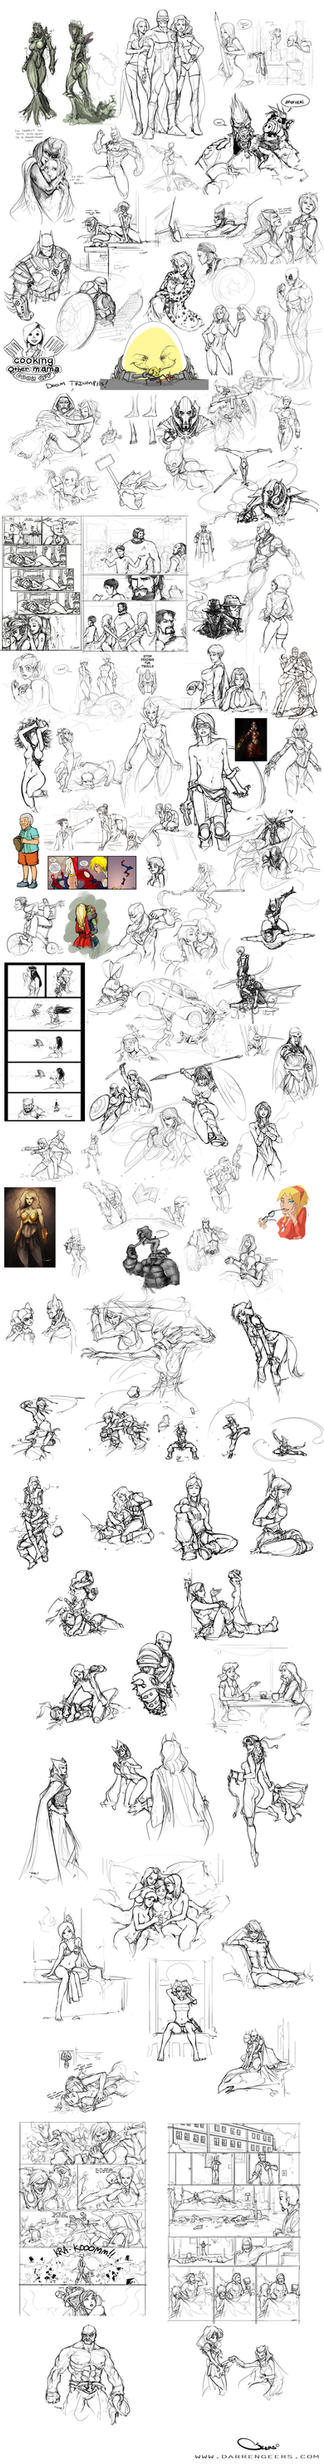 Sketch Compilation (updated) by DarrenGeers